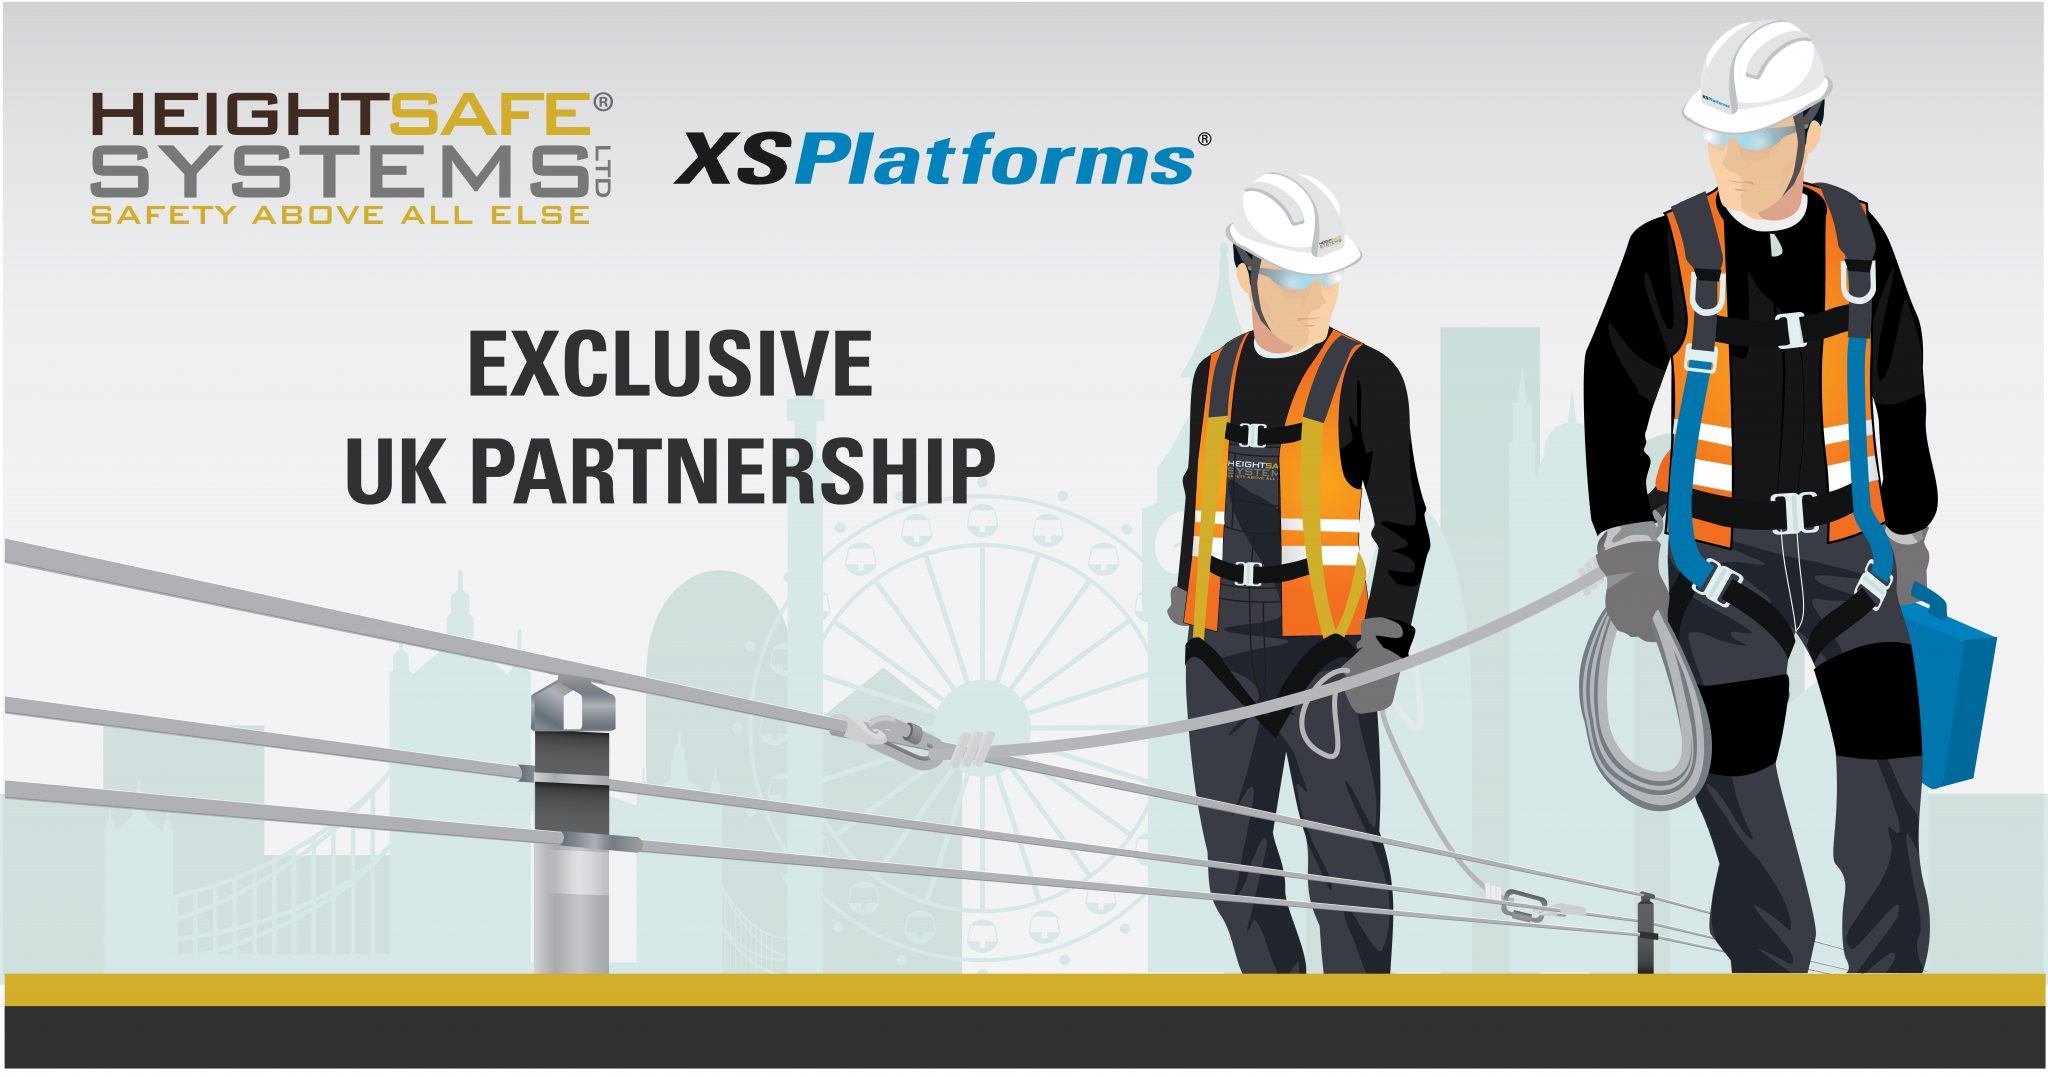 Heightsafe Systems Announce  Exclusive UK Partnership with XSPlatforms